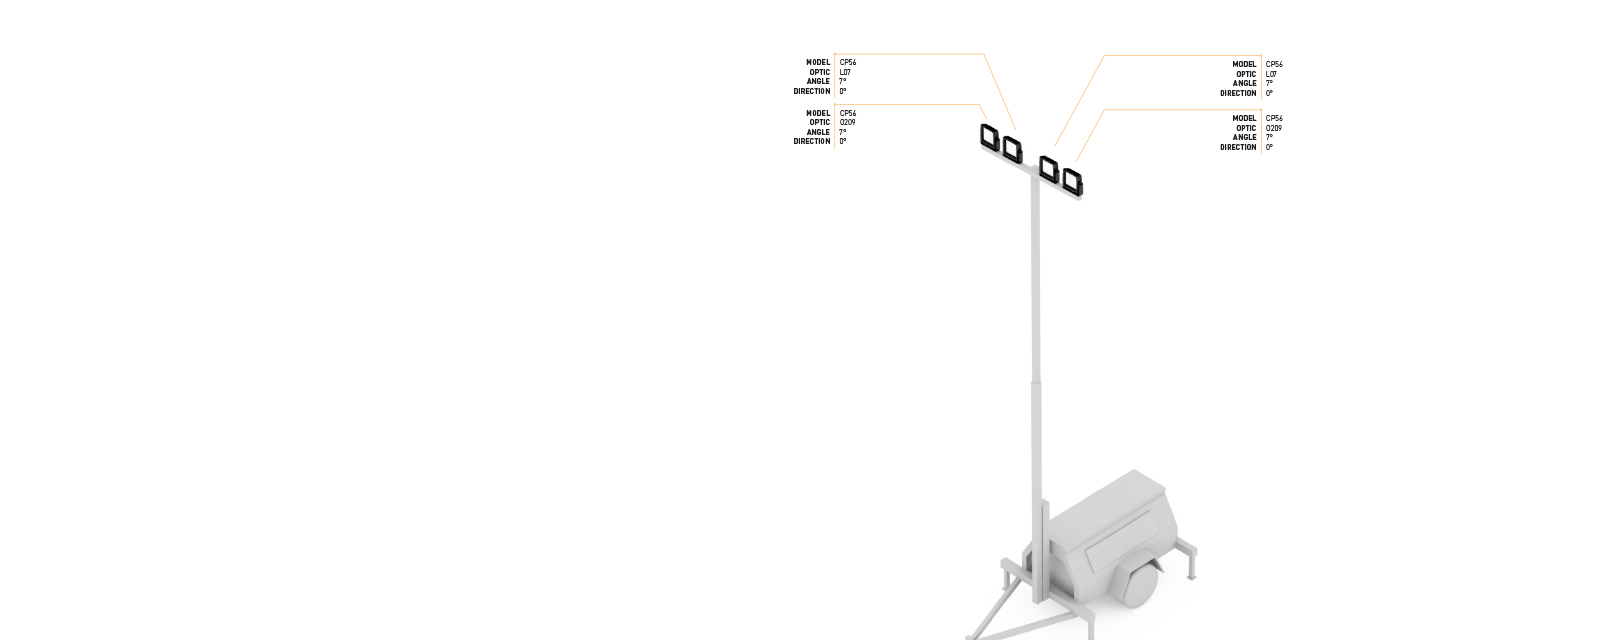 This Lighting Design Simulation Report shows how Coolon CP56 LED Floodlight can transform such a generic mining equipment as a Lighting Tower